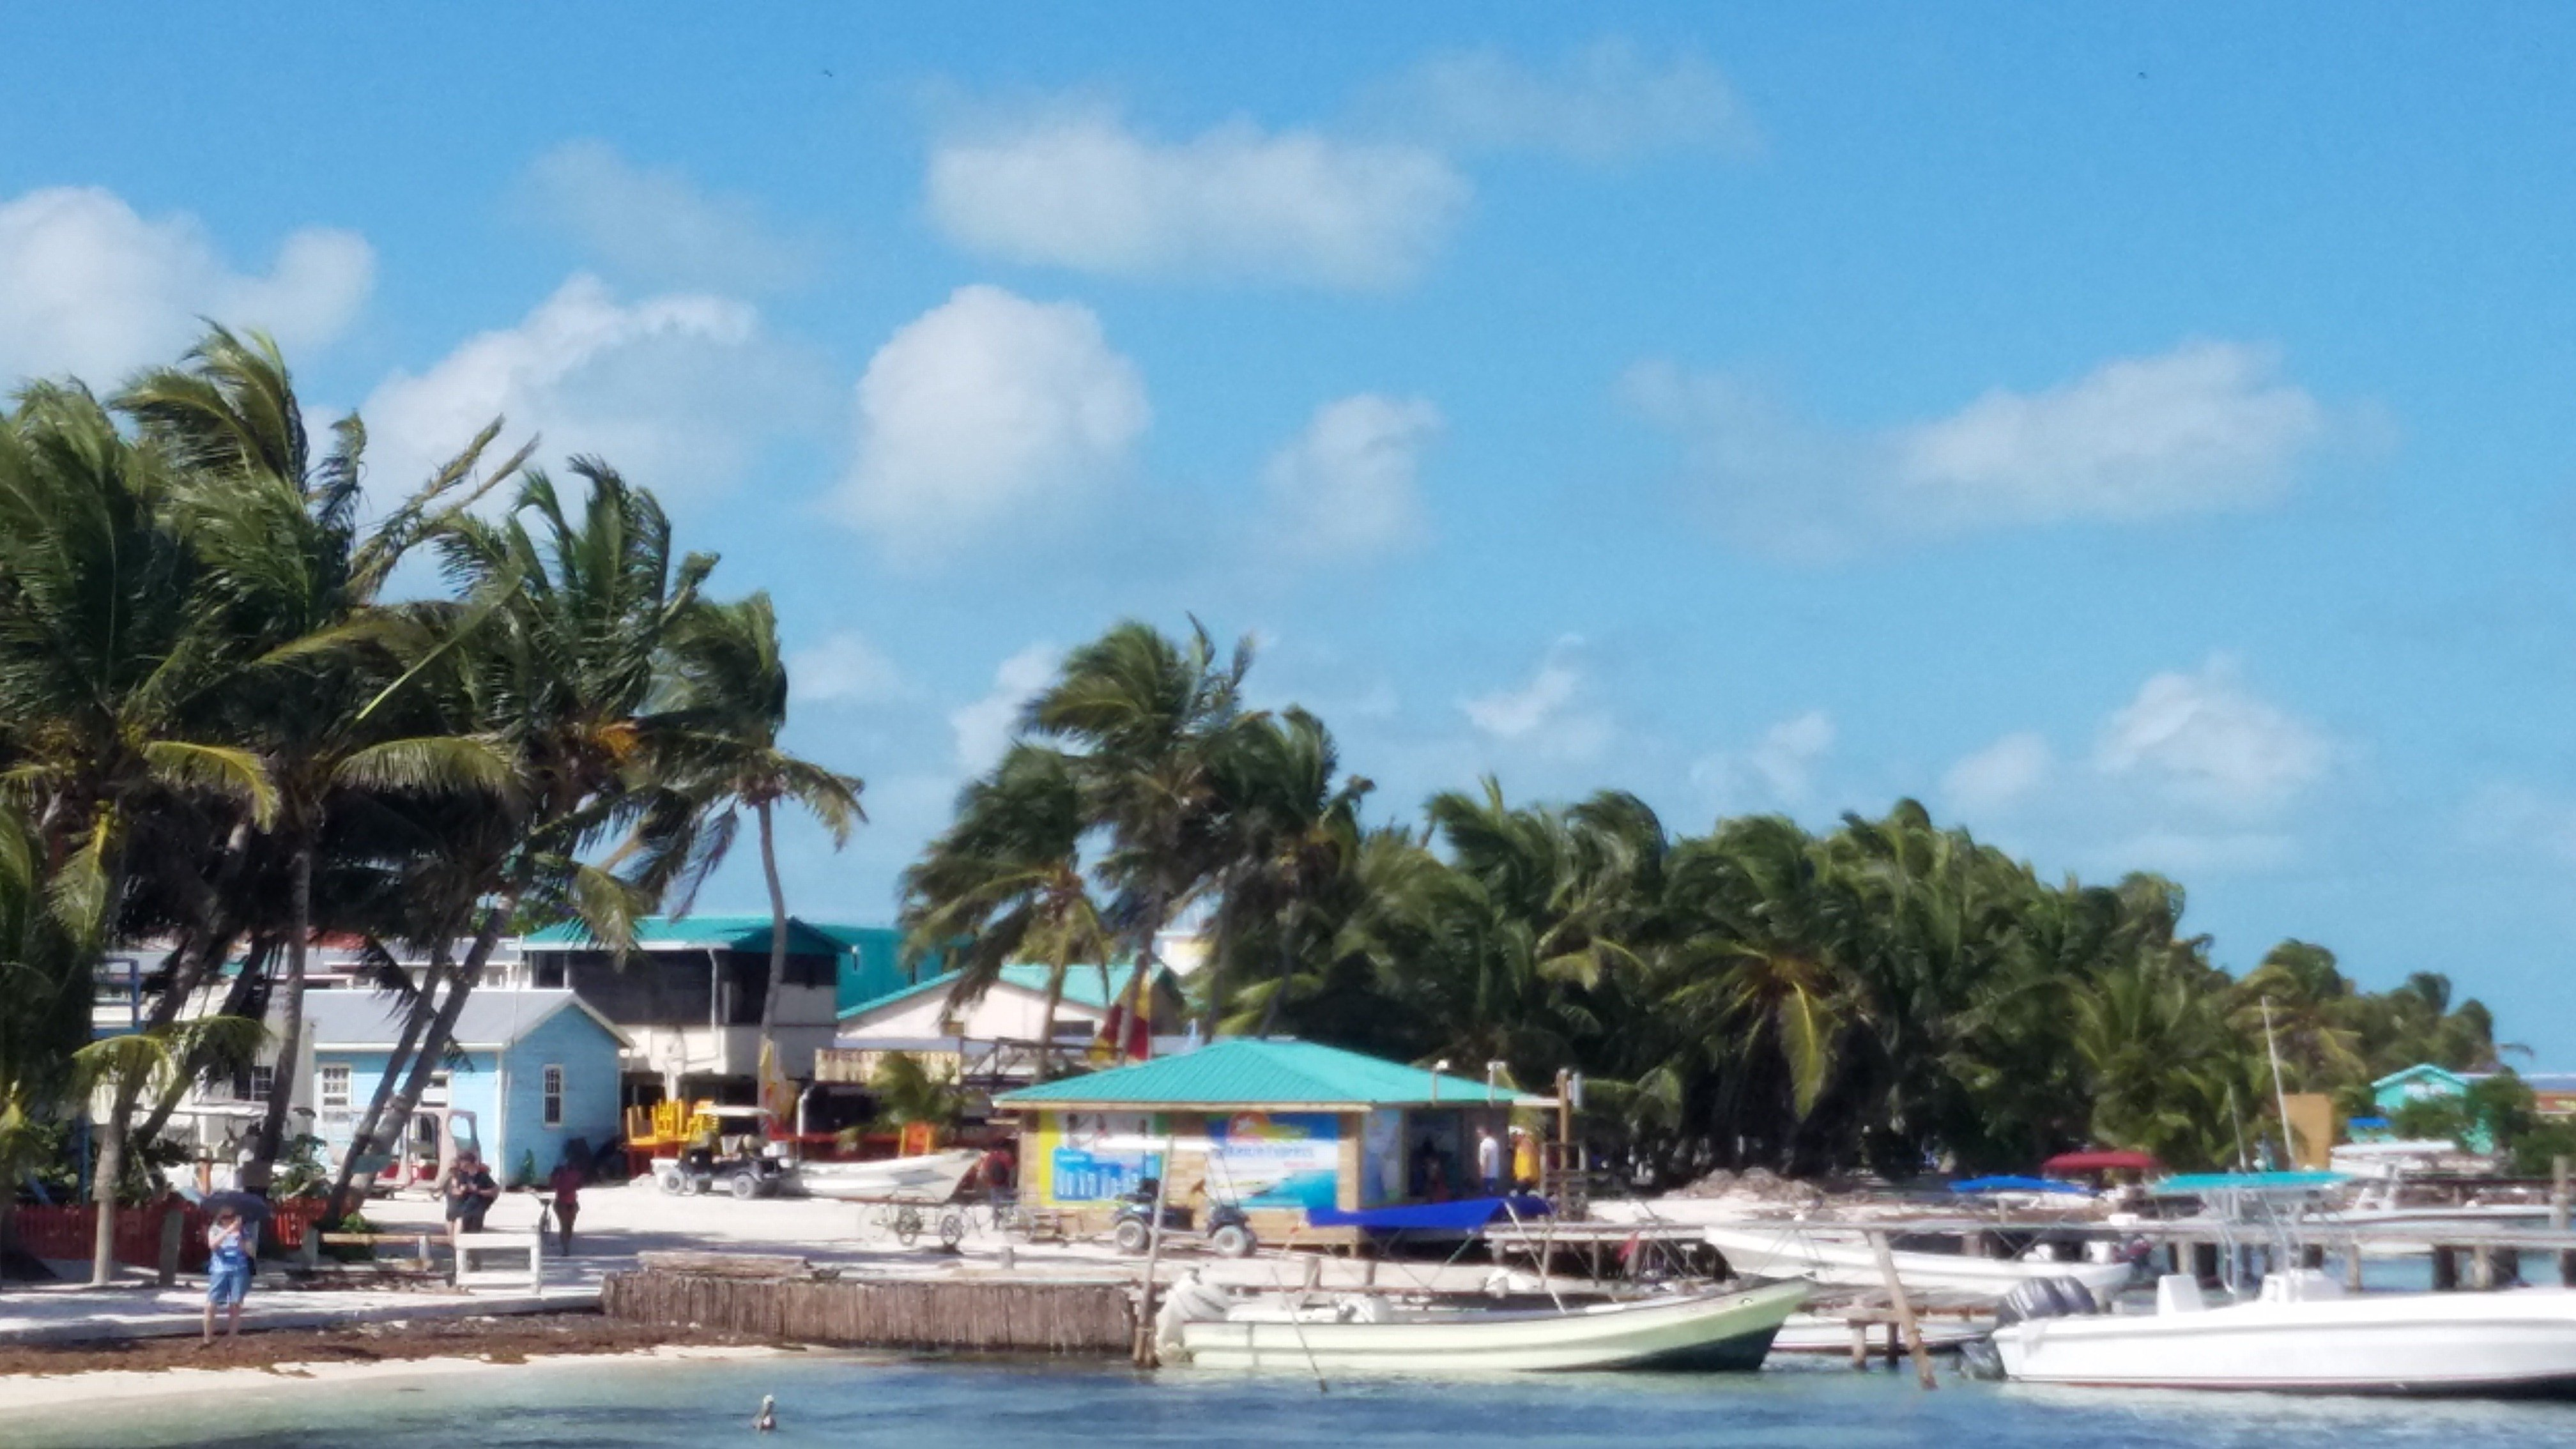 Had an awesome time with Javier & Patrick on Coralbreeze tours- snorkeling, fresh lobster- local